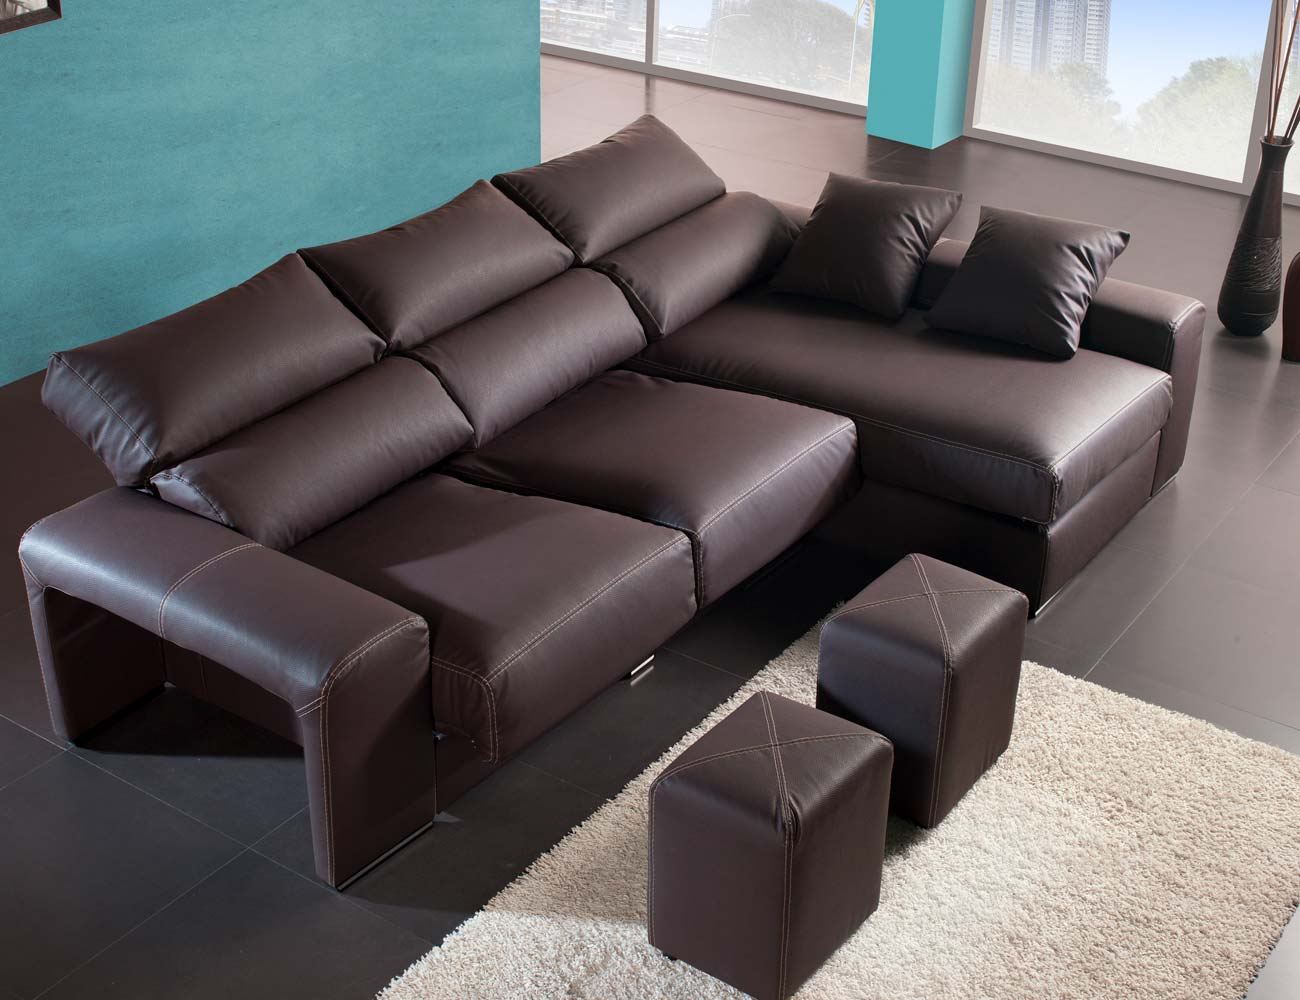 Sofa chaiselongue moderno polipiel chocolate poufs taburetes34